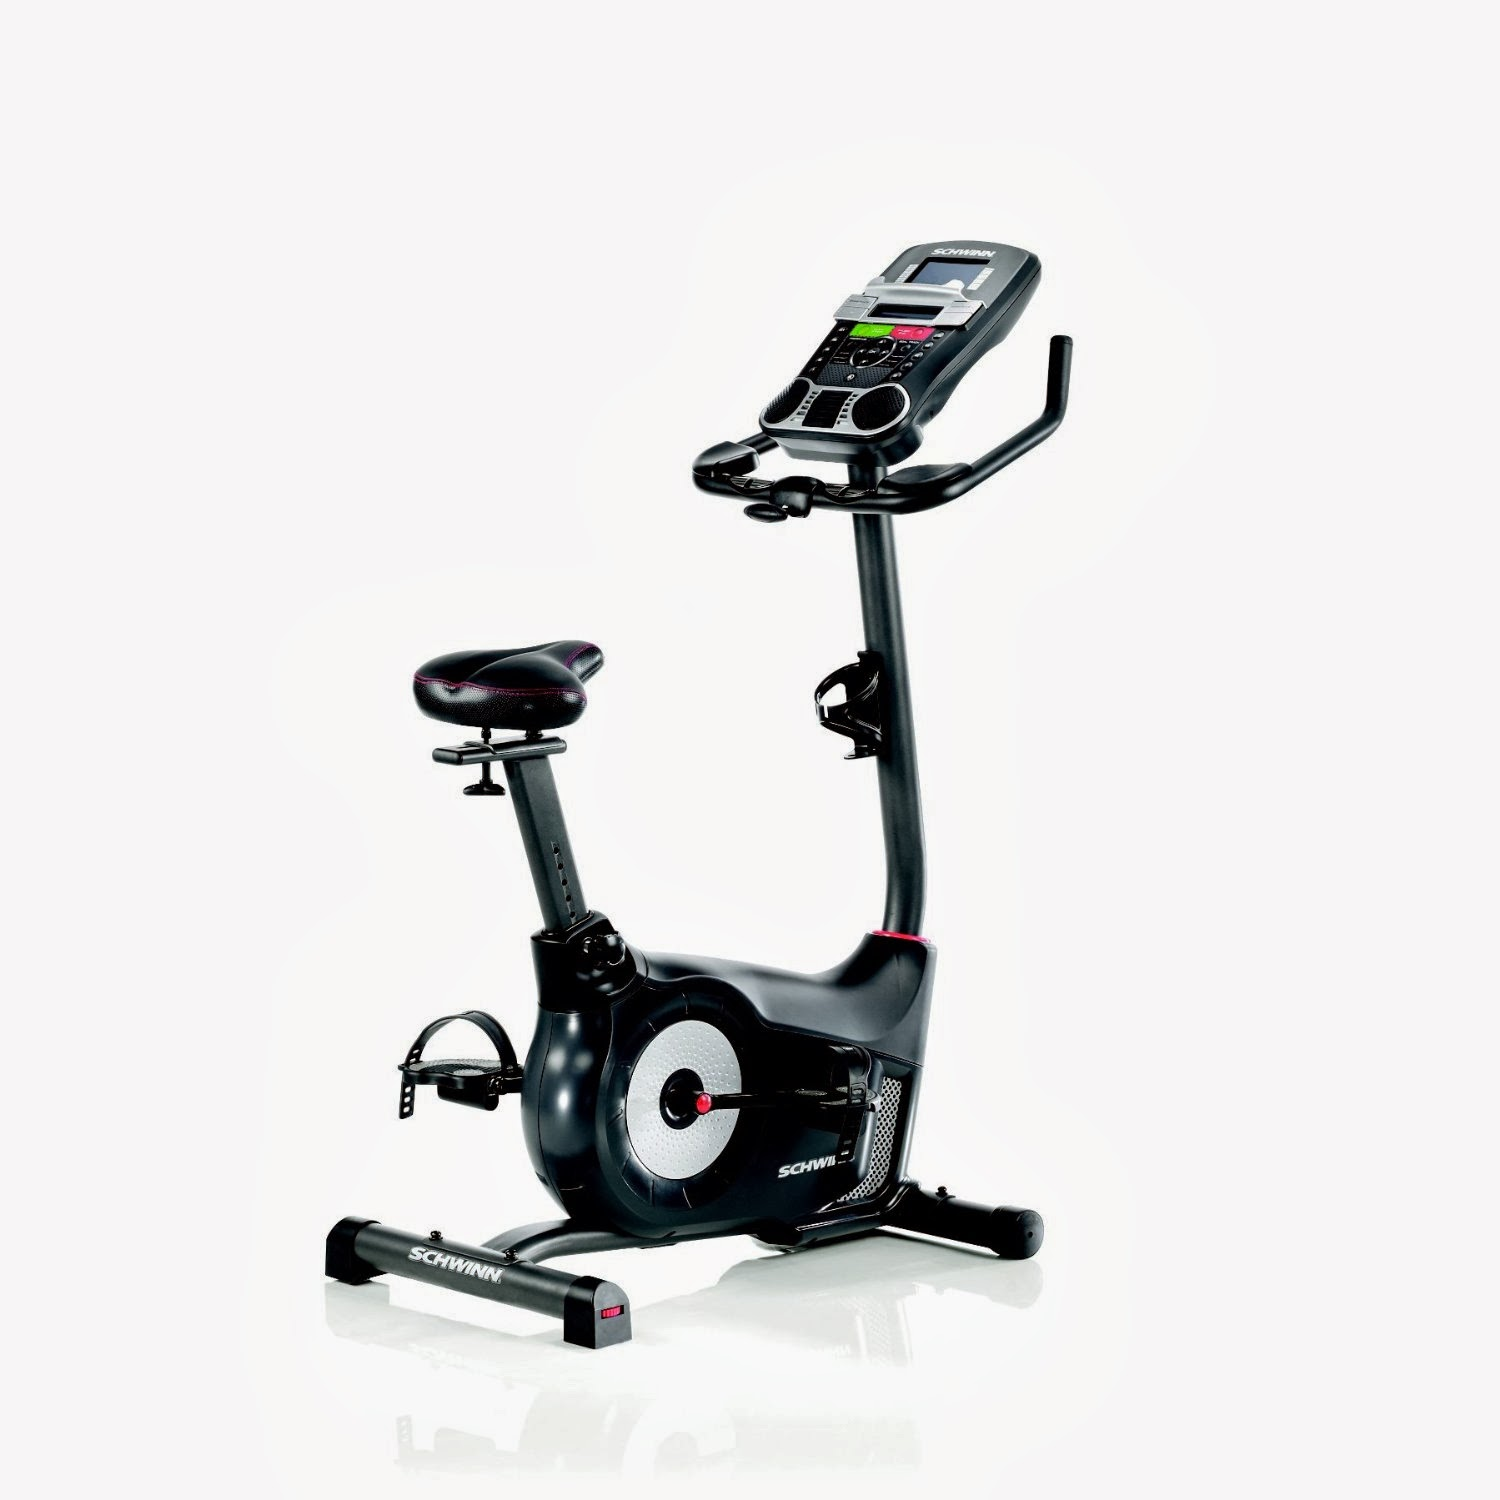 Schwinn 170 Upright Exercise Bike, picture, review features & specifications